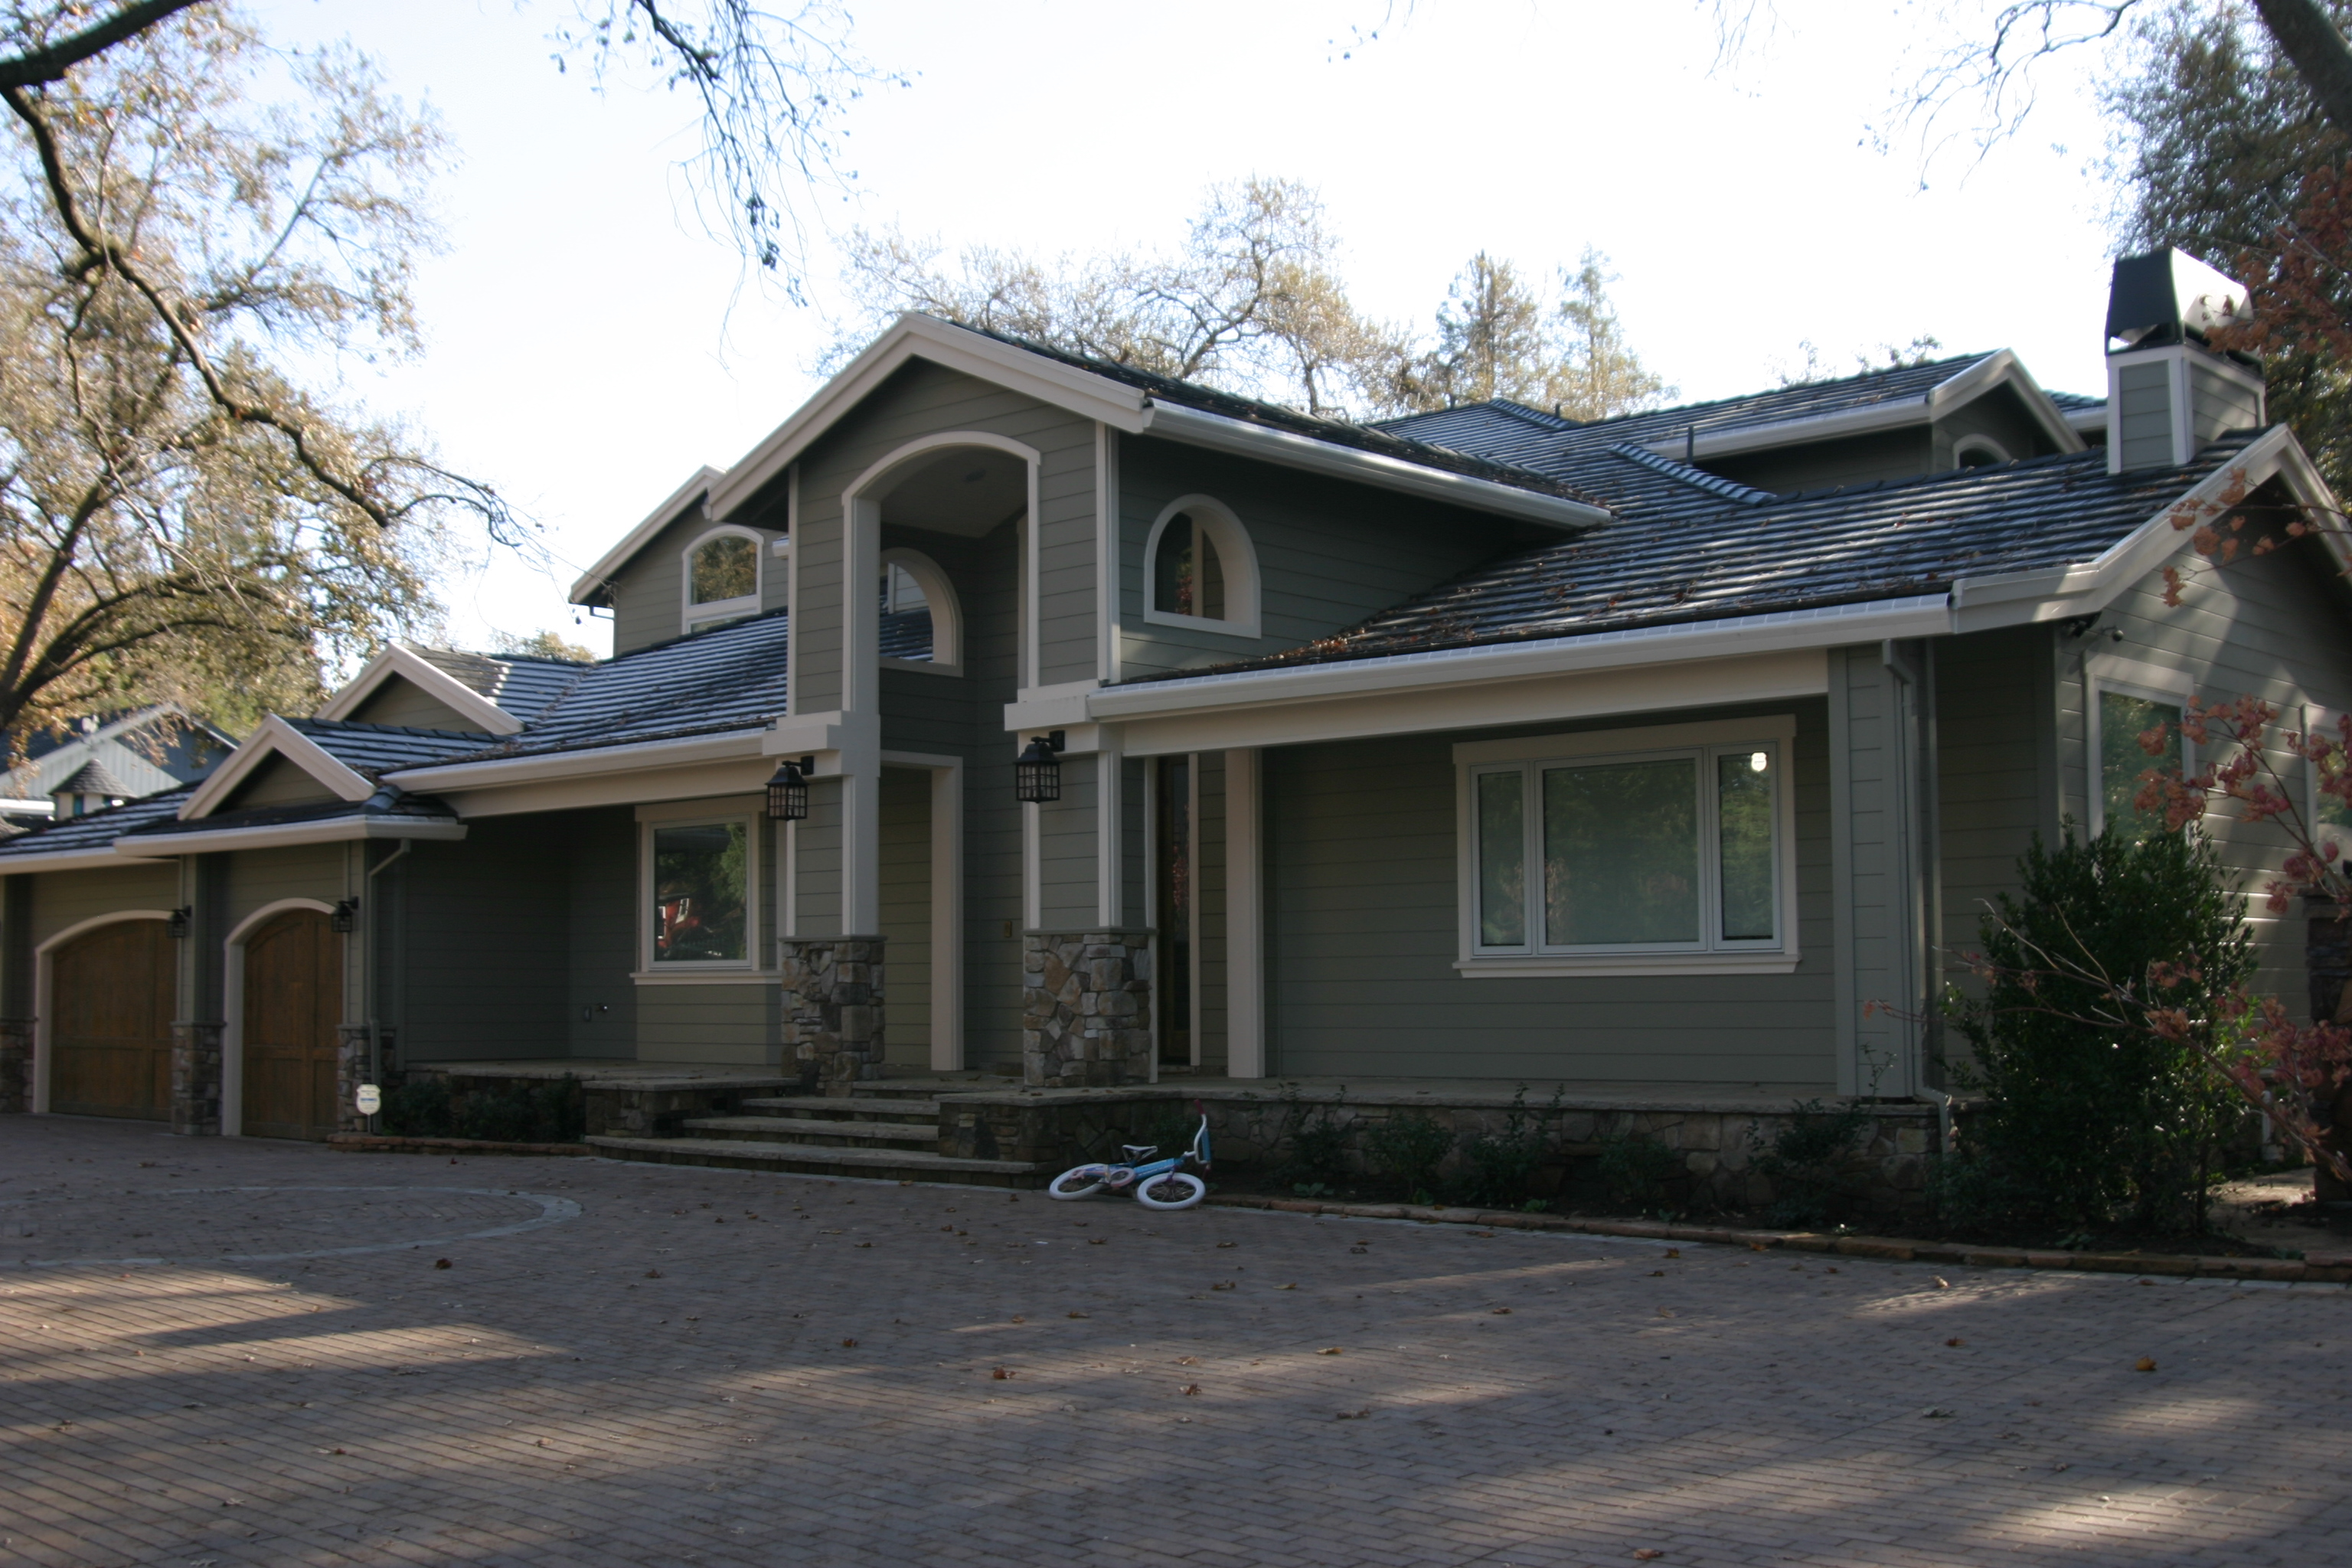 Main House - Front View